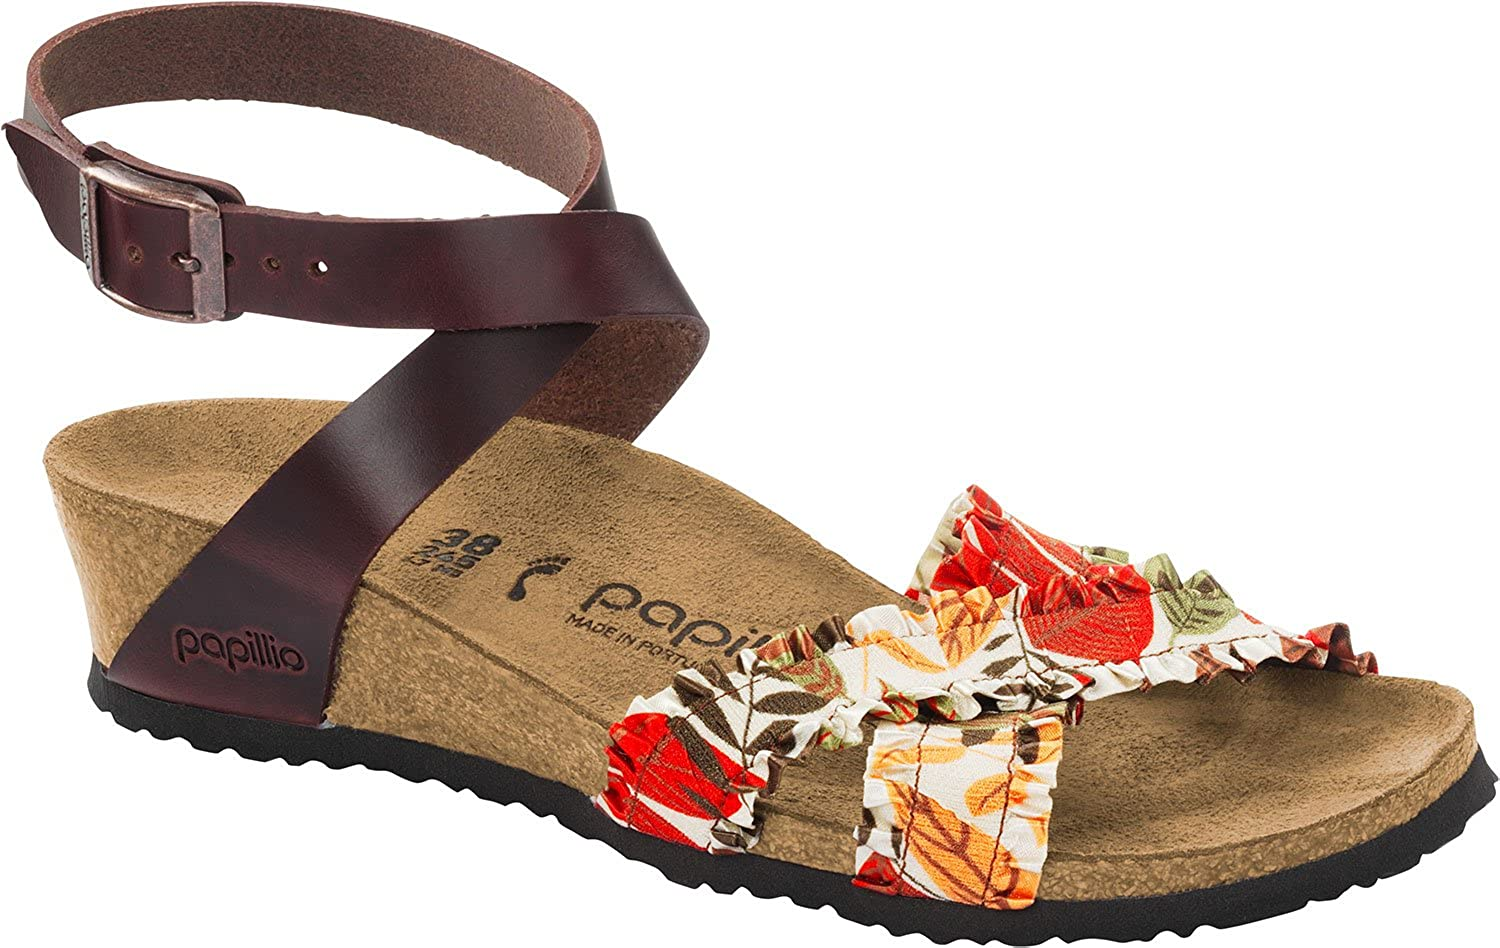 Papillio Lola Frills Stretch Leather Flower Frills - The shoes for Women, Made from Textile with a Sole Made of Rubber.